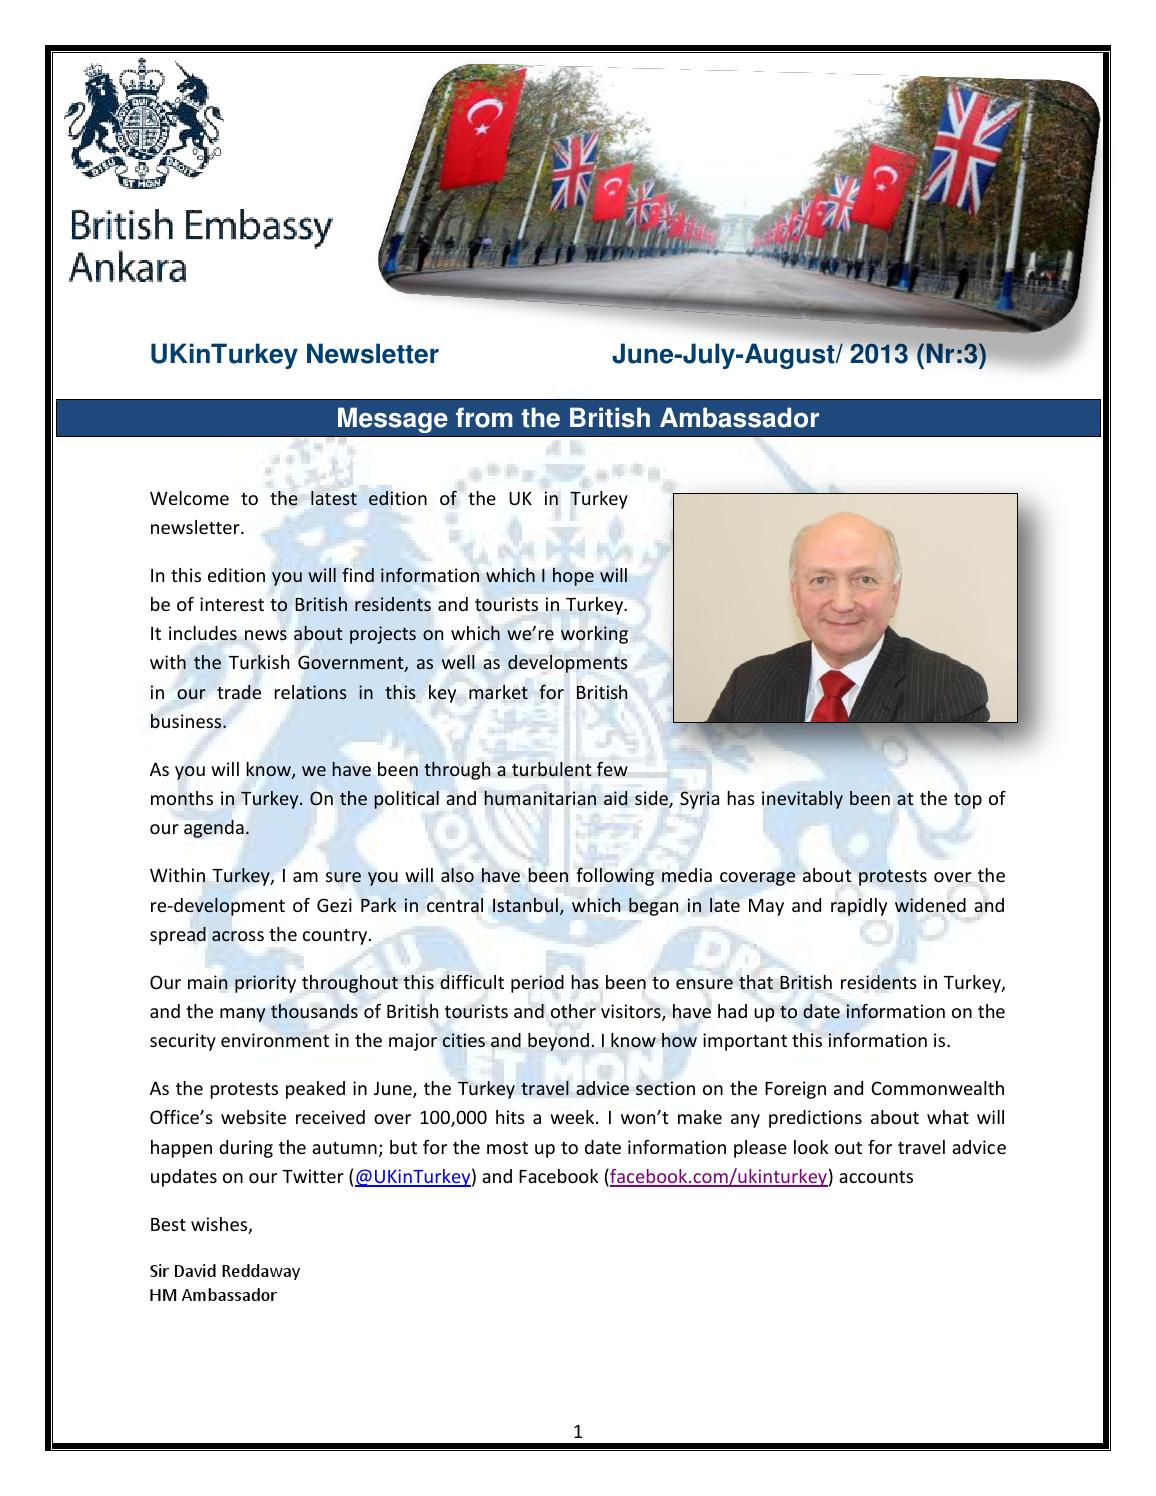 Ukinturkey newsletter Sept 2013 by ukinturkey ukinturkey - issuu